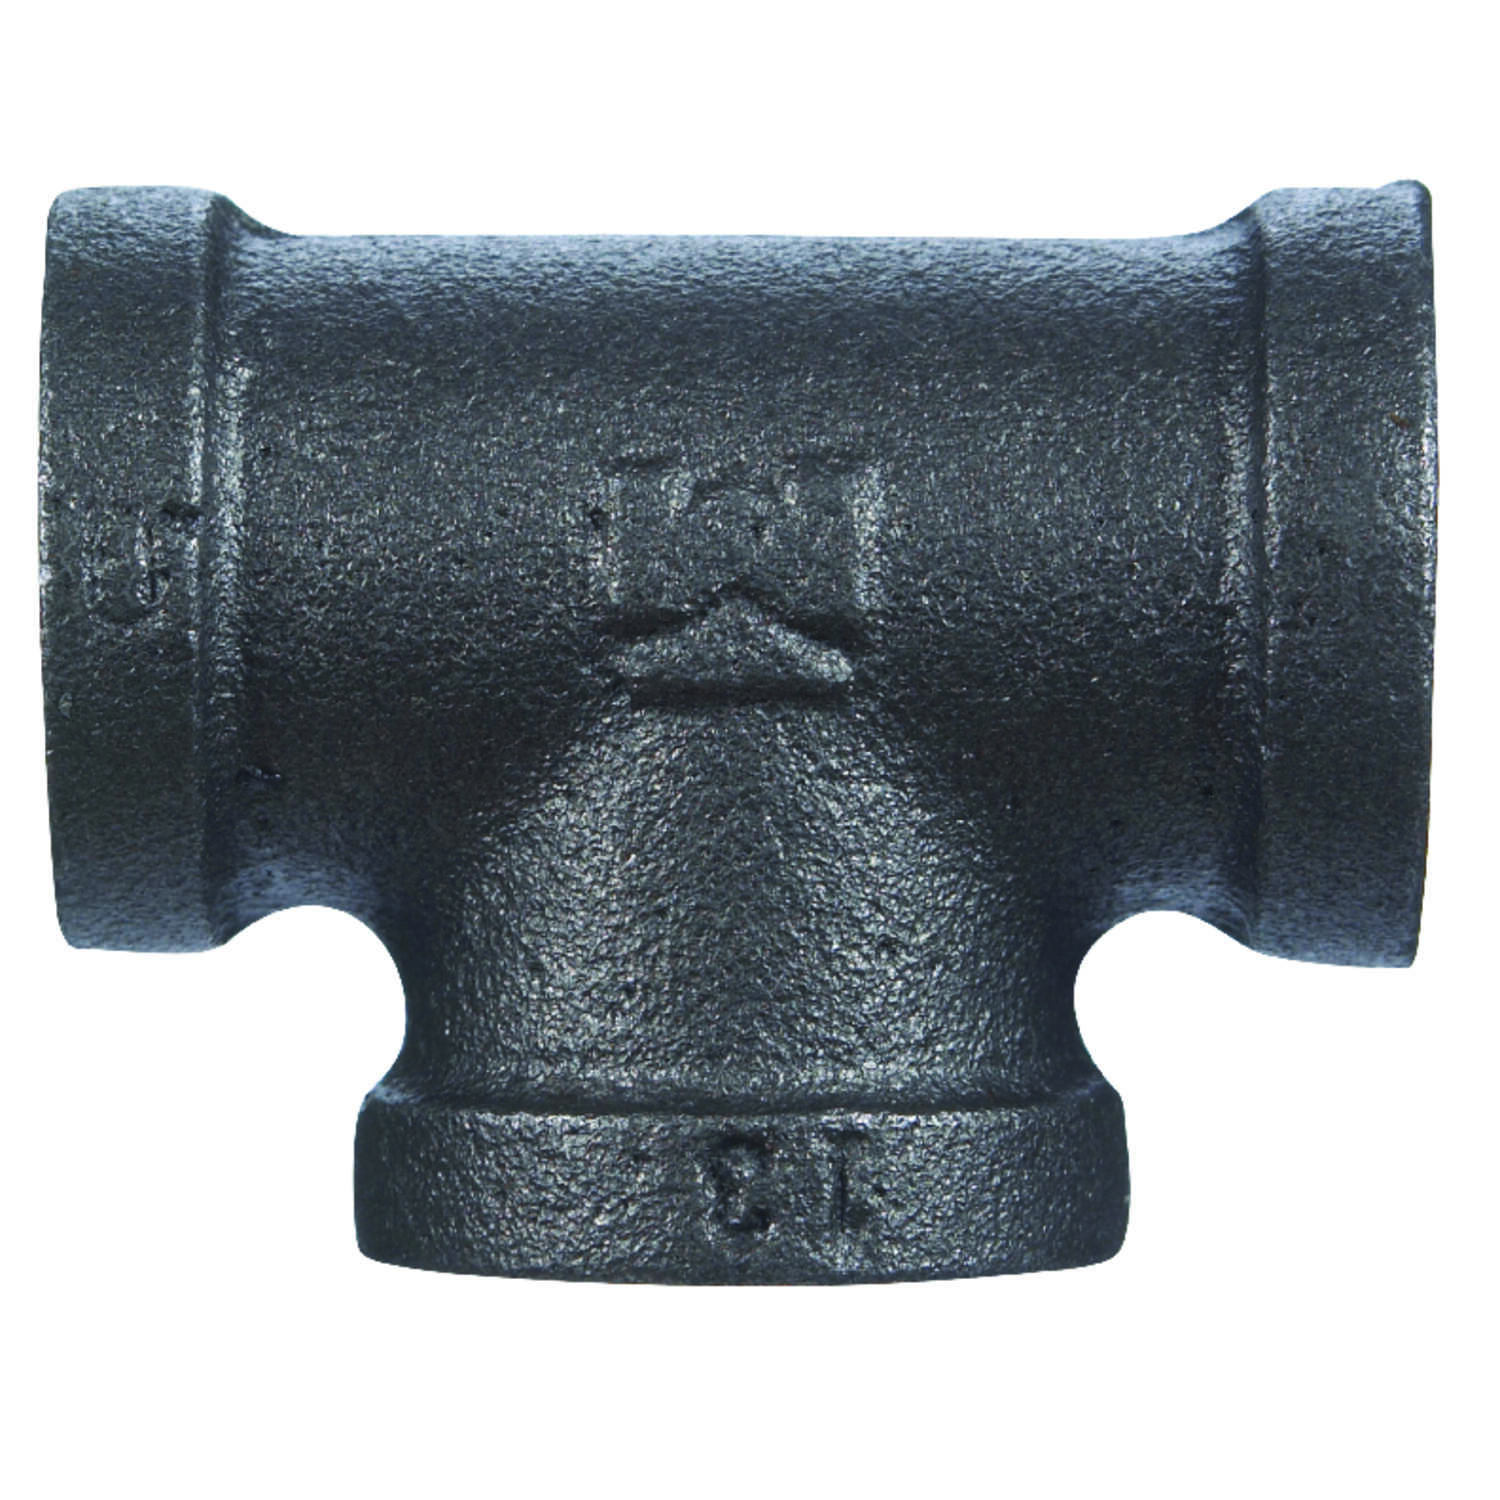 BK Products  1/2 in. FPT   x 1/2 in. Dia. FPT  Black  Malleable Iron  Tee